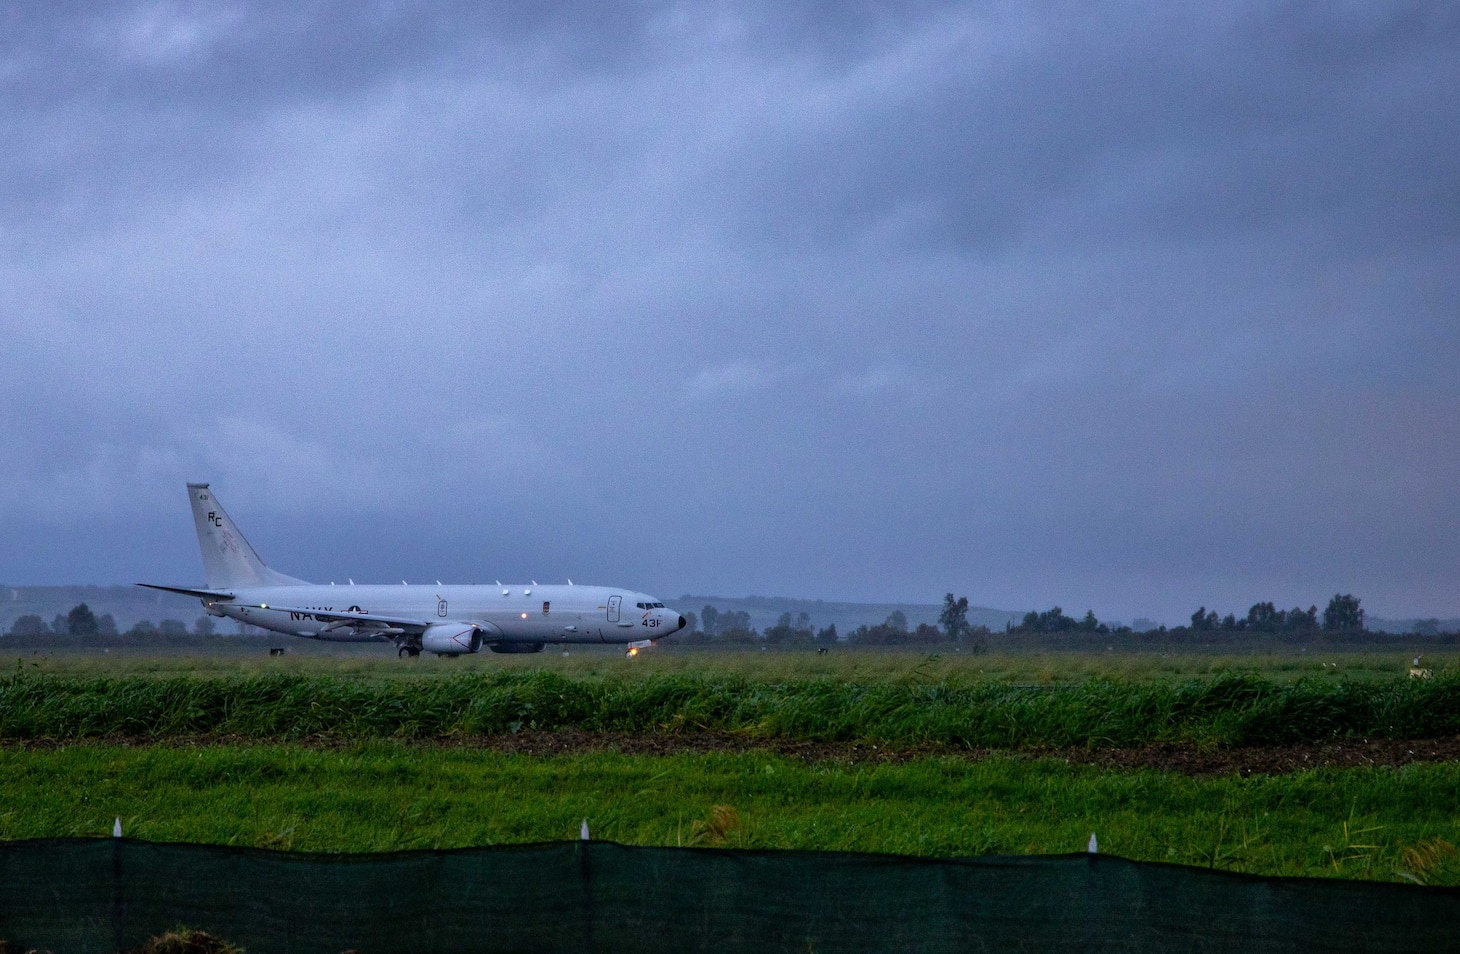 P-8A Poseidon assigned to VP-46 taxis before takeoff